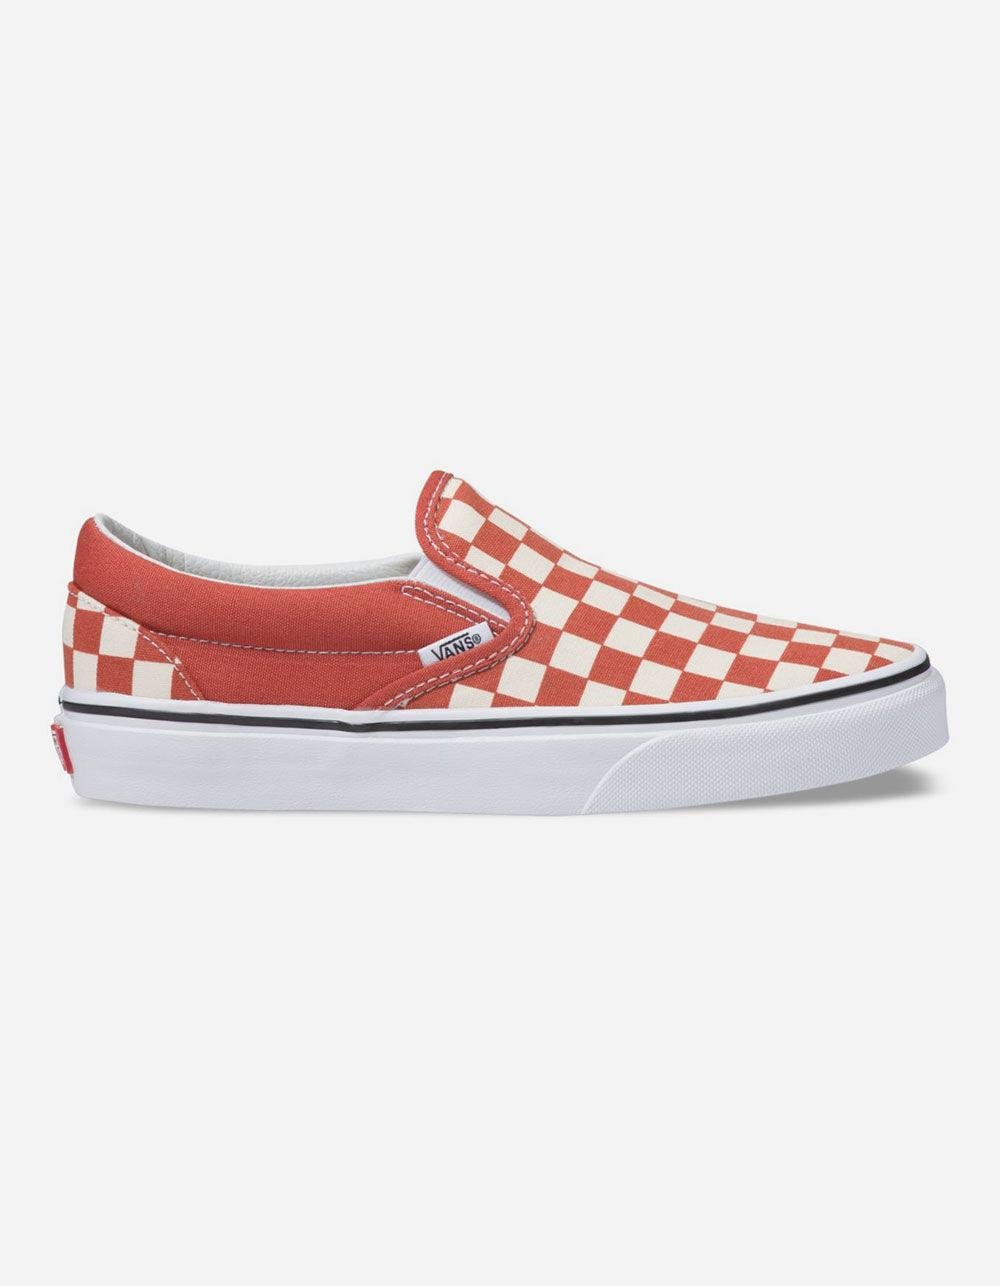 dc81d326c443 Lyst - Vans Checkerboard Classic Slip-on Hot Sauce   True White ...